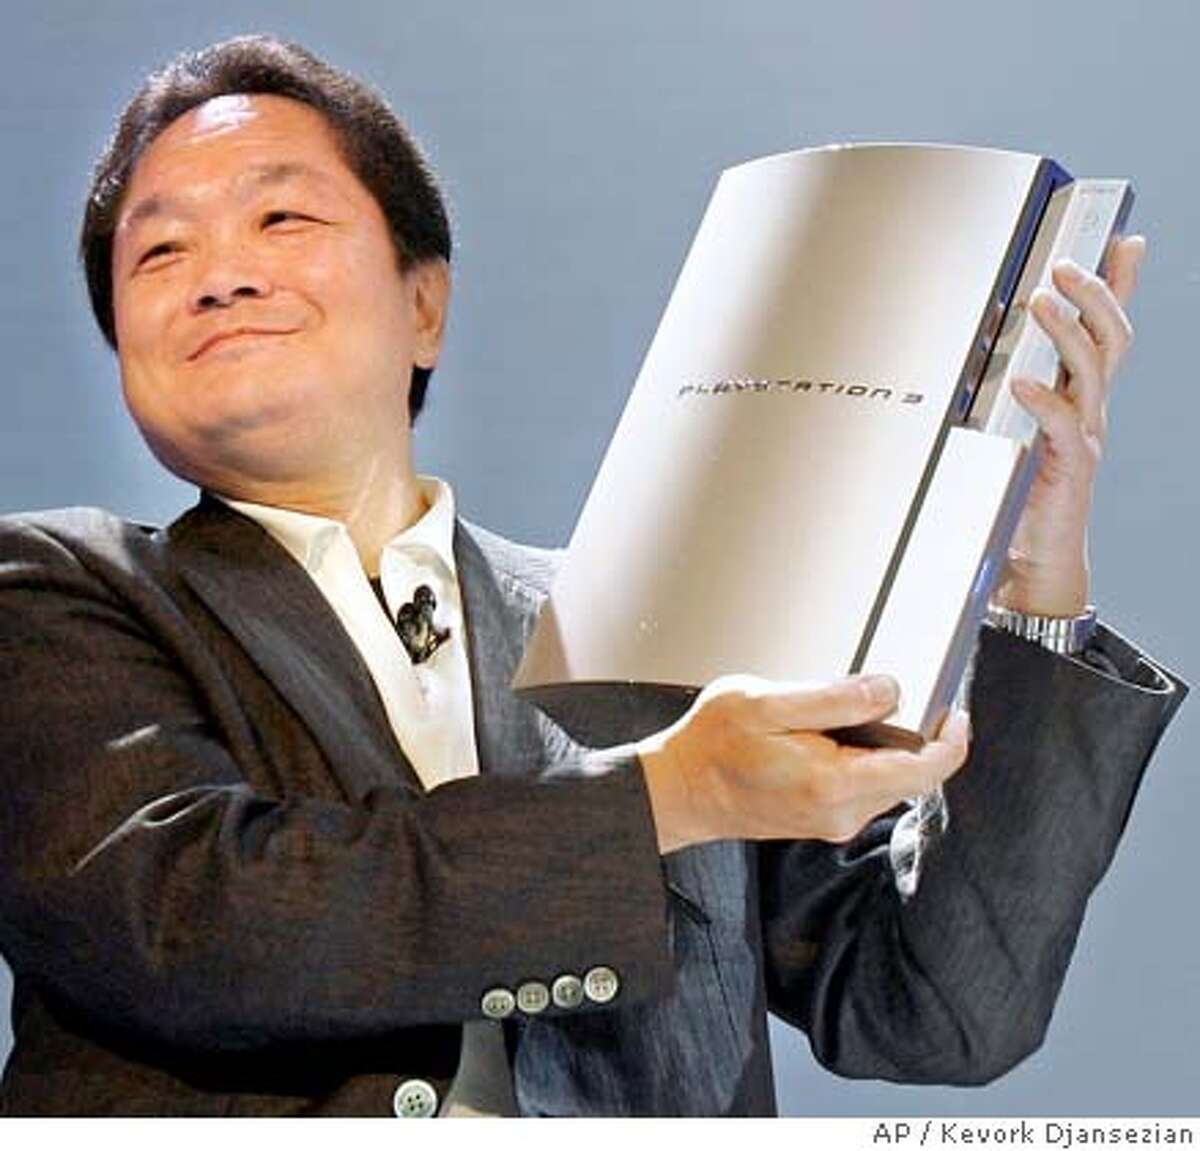 Ken Kutaragi, president and CEO of Sony Computer Entertainment Inc., holds up a prototype of the new Playsation 3 computer entertainment system during a news conference in Culver City, Calif., Monday, May 16, 2005. (AP Photo/Kevork Djansezian)